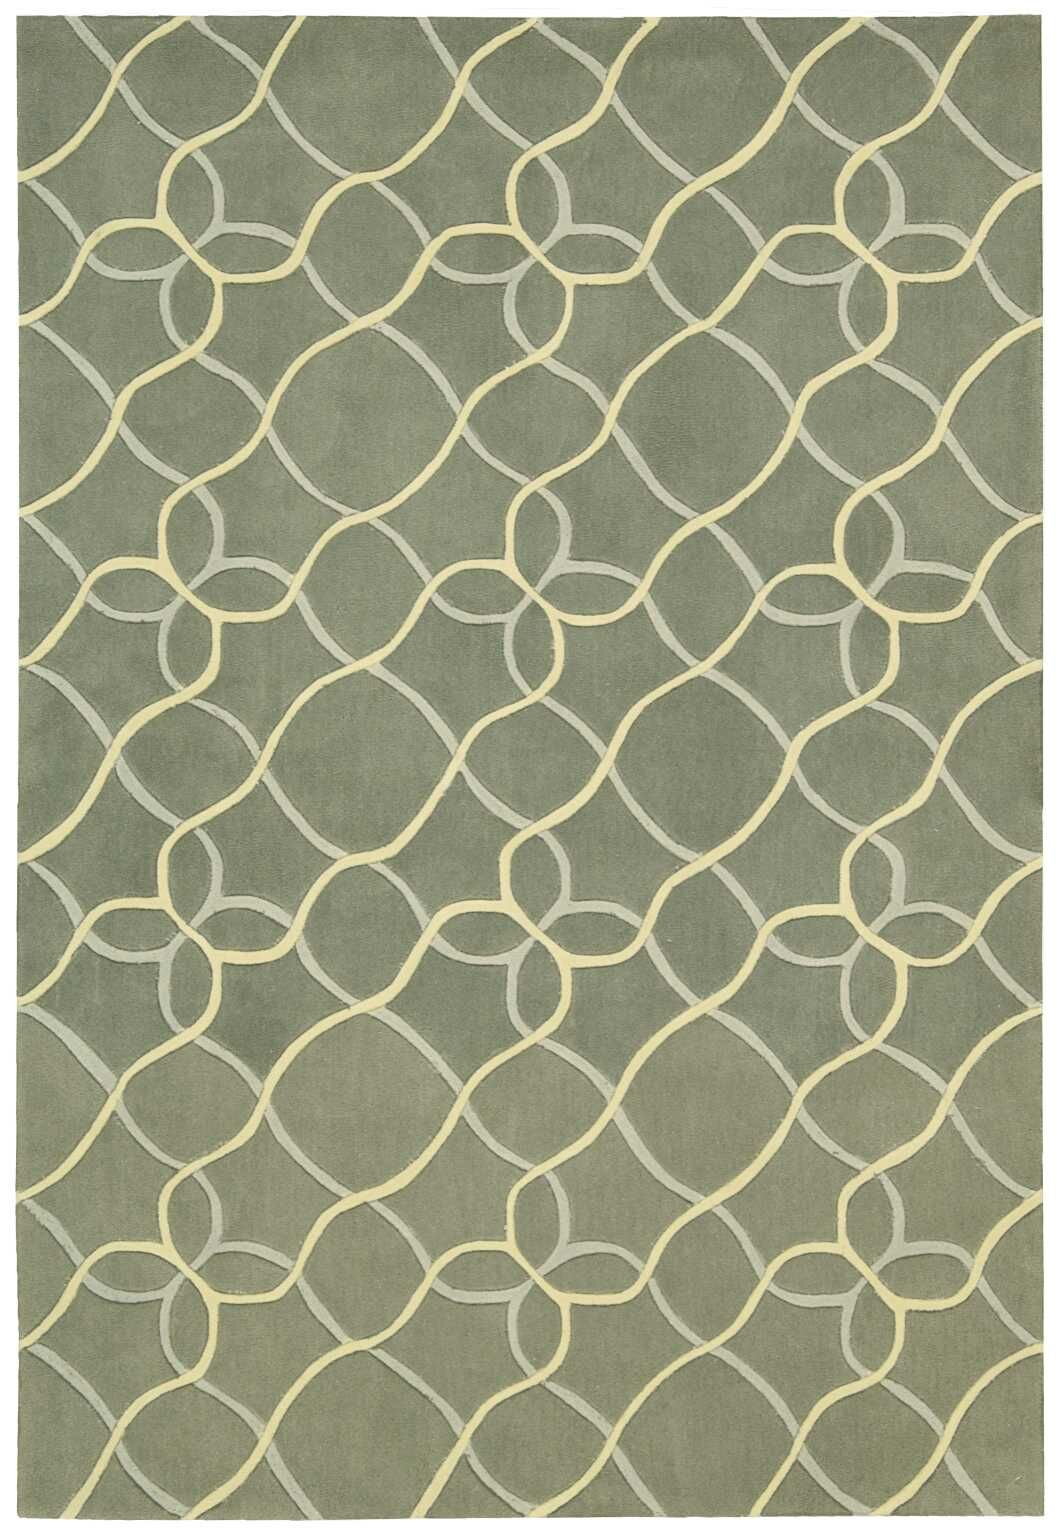 Venable Handmade Sage/Beige Area Rug Rug Size: Rectangle 7'3